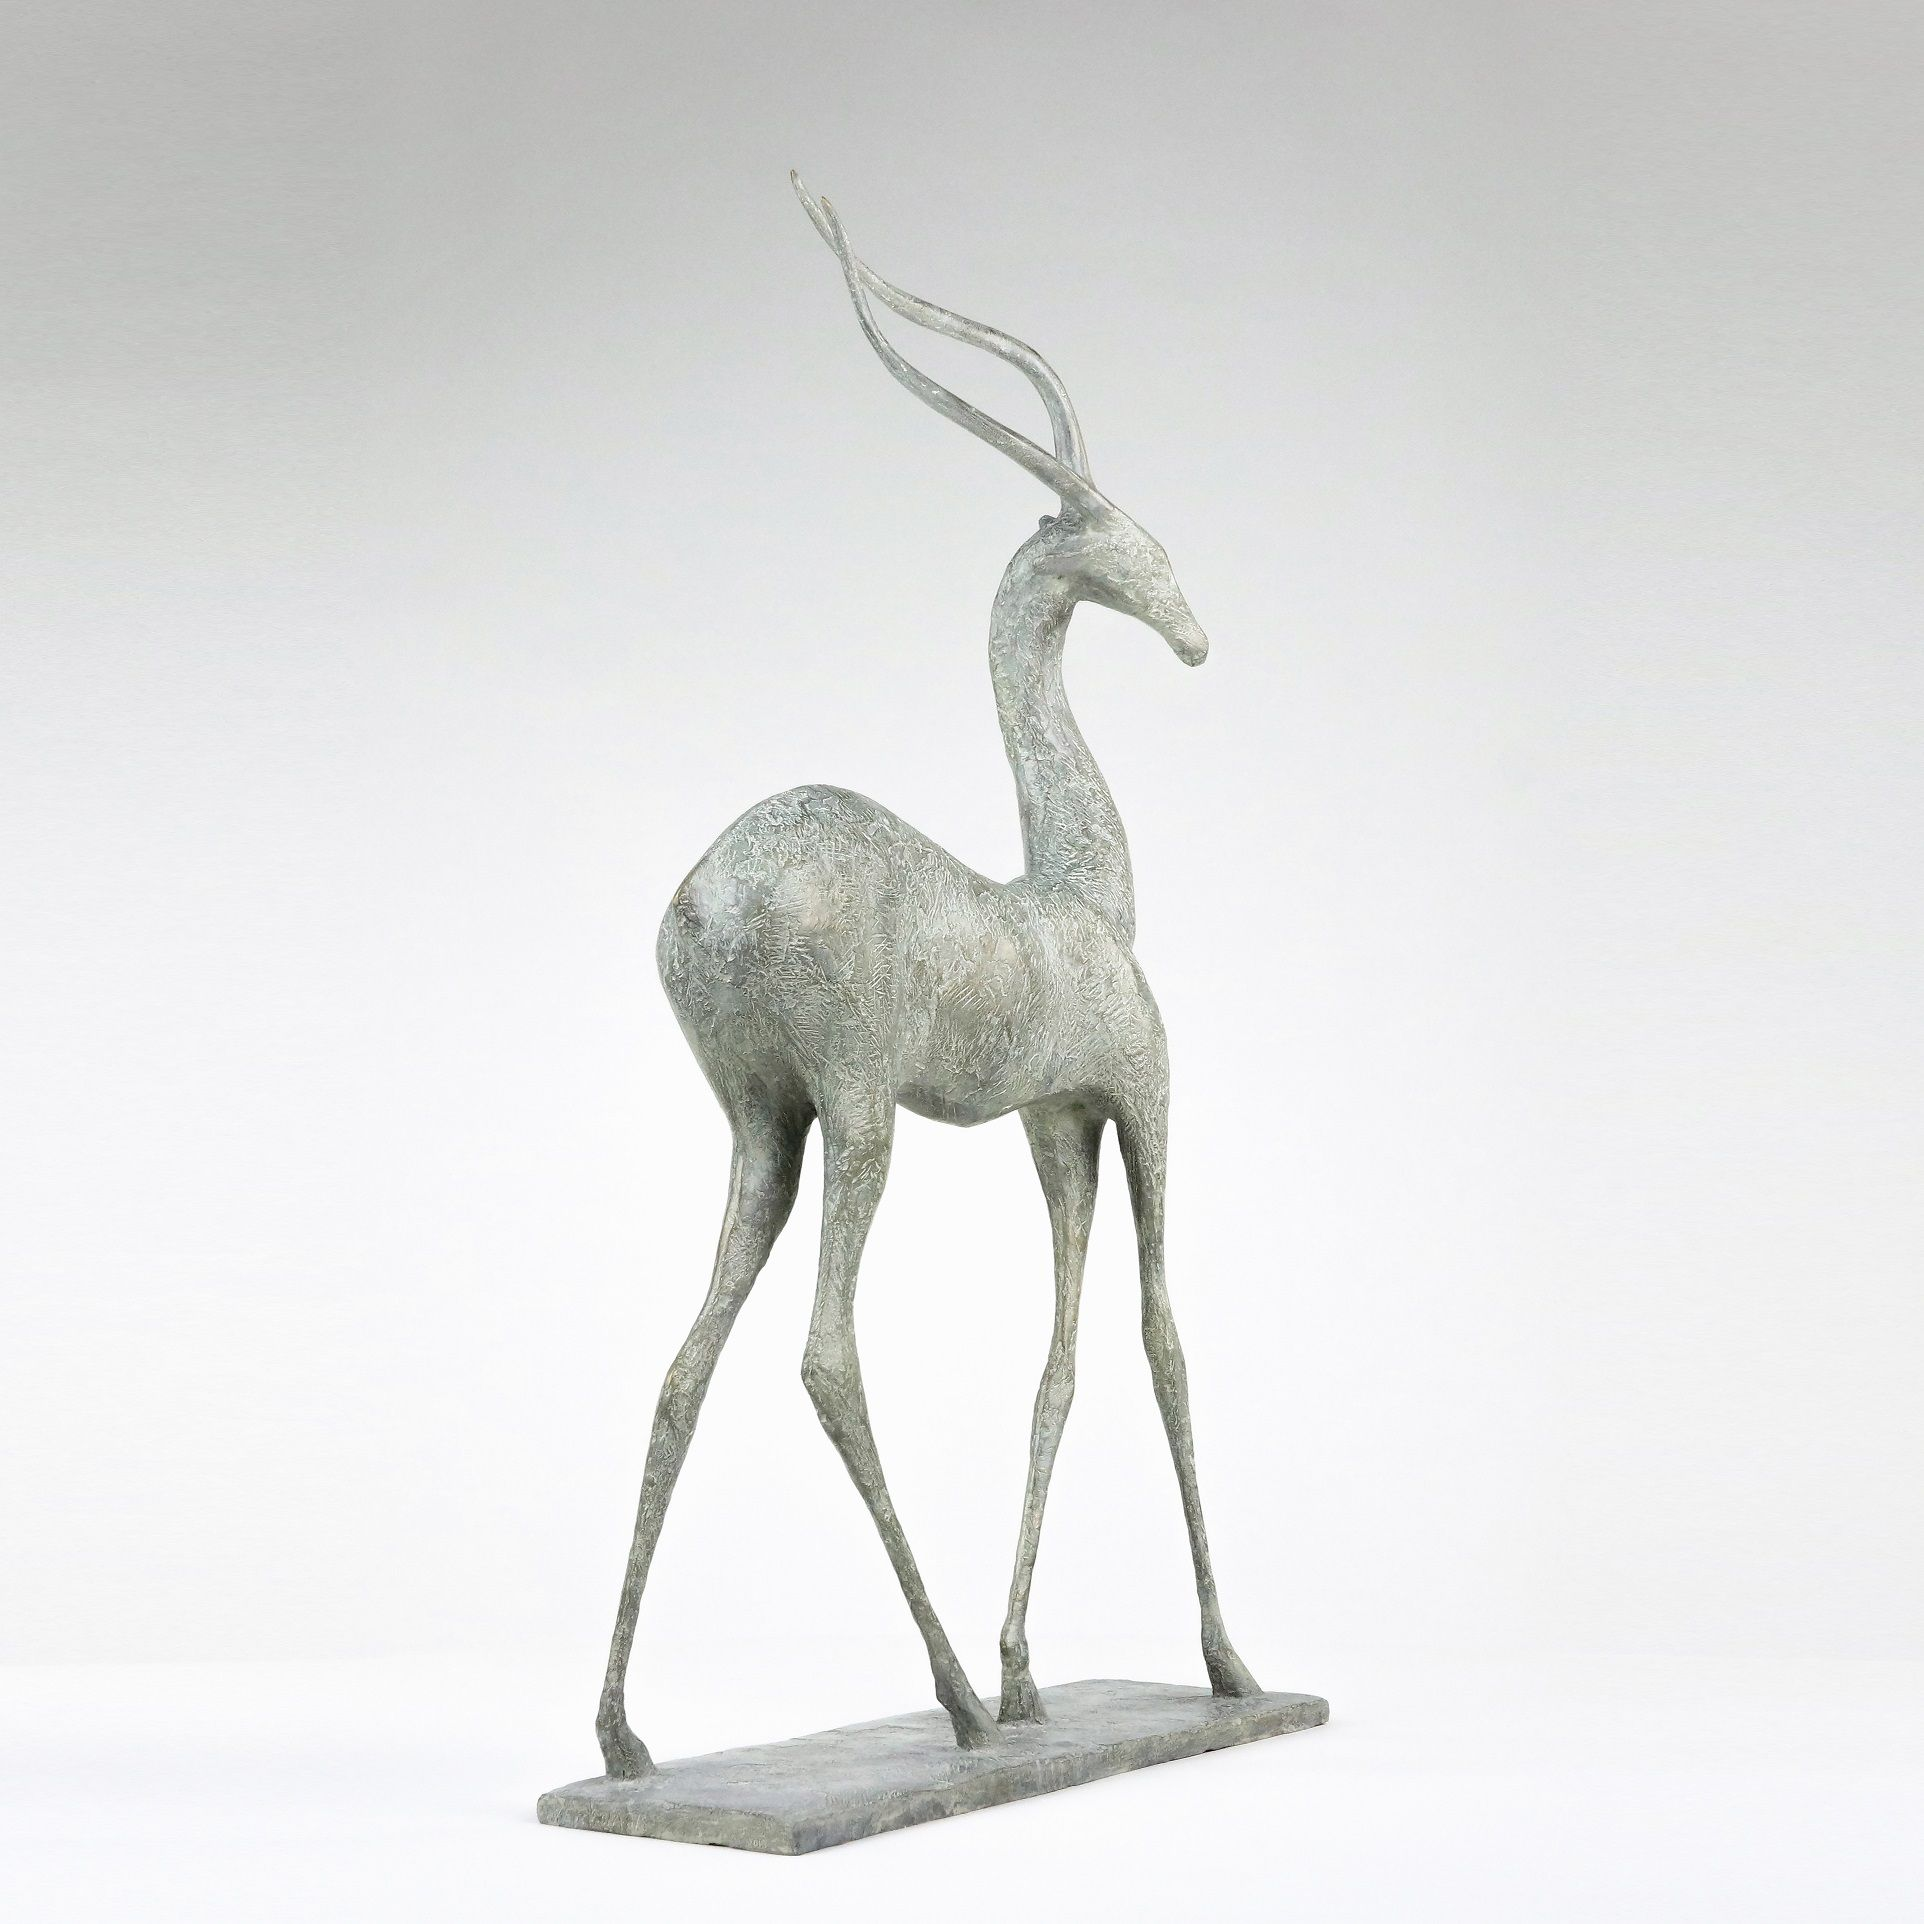 Gazelle II,Pierre Yermia,Sculpture, detail 4